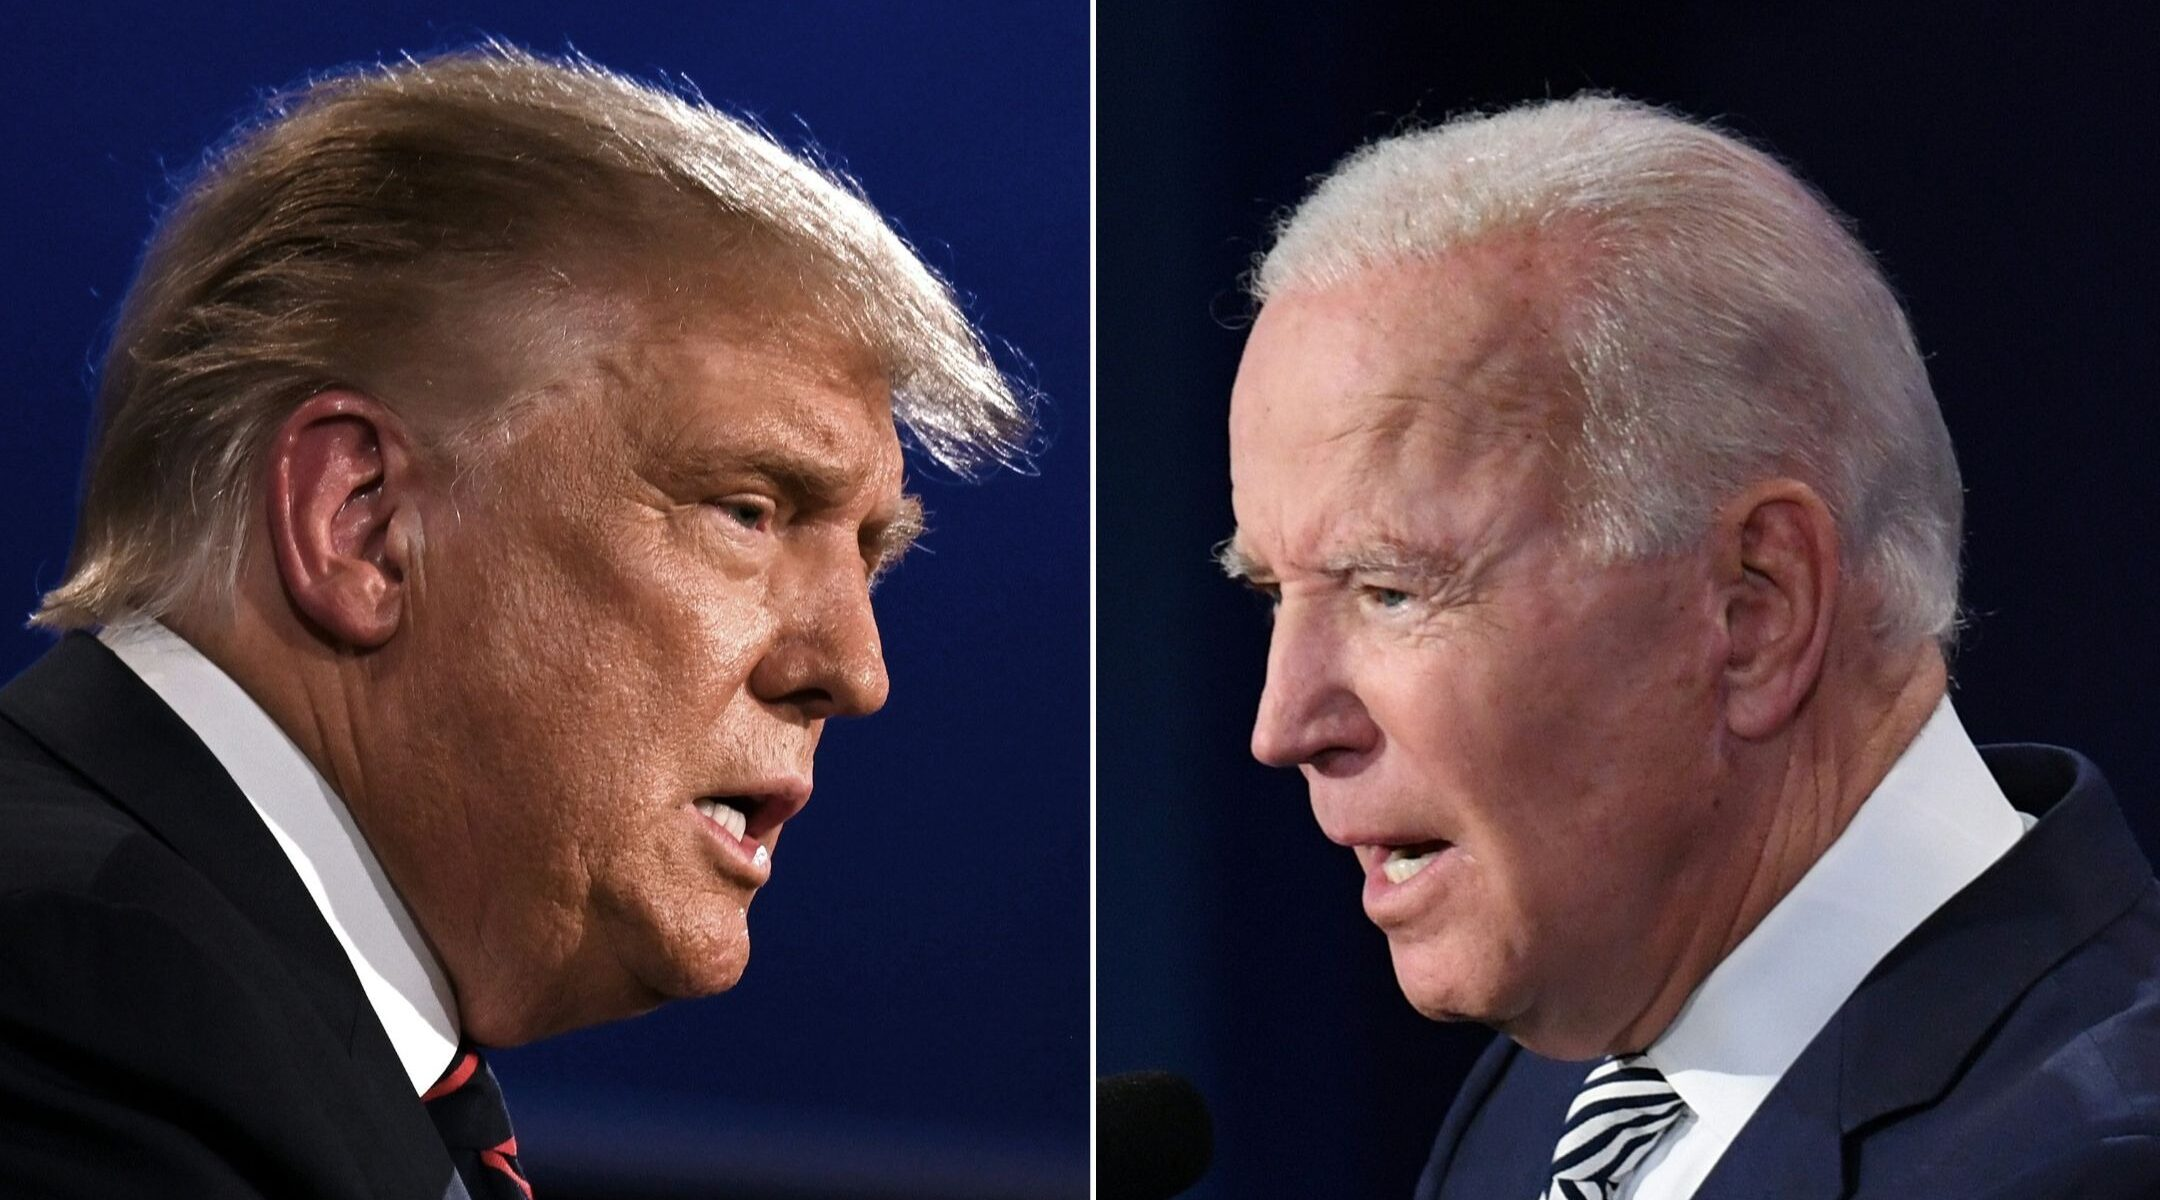 President Donald Trump (left) and former Vice President Joe Biden square off during the first presidential debate, Sept. 29, 2020. (Photos/JTA-Jim Watson-Saul Loeb)